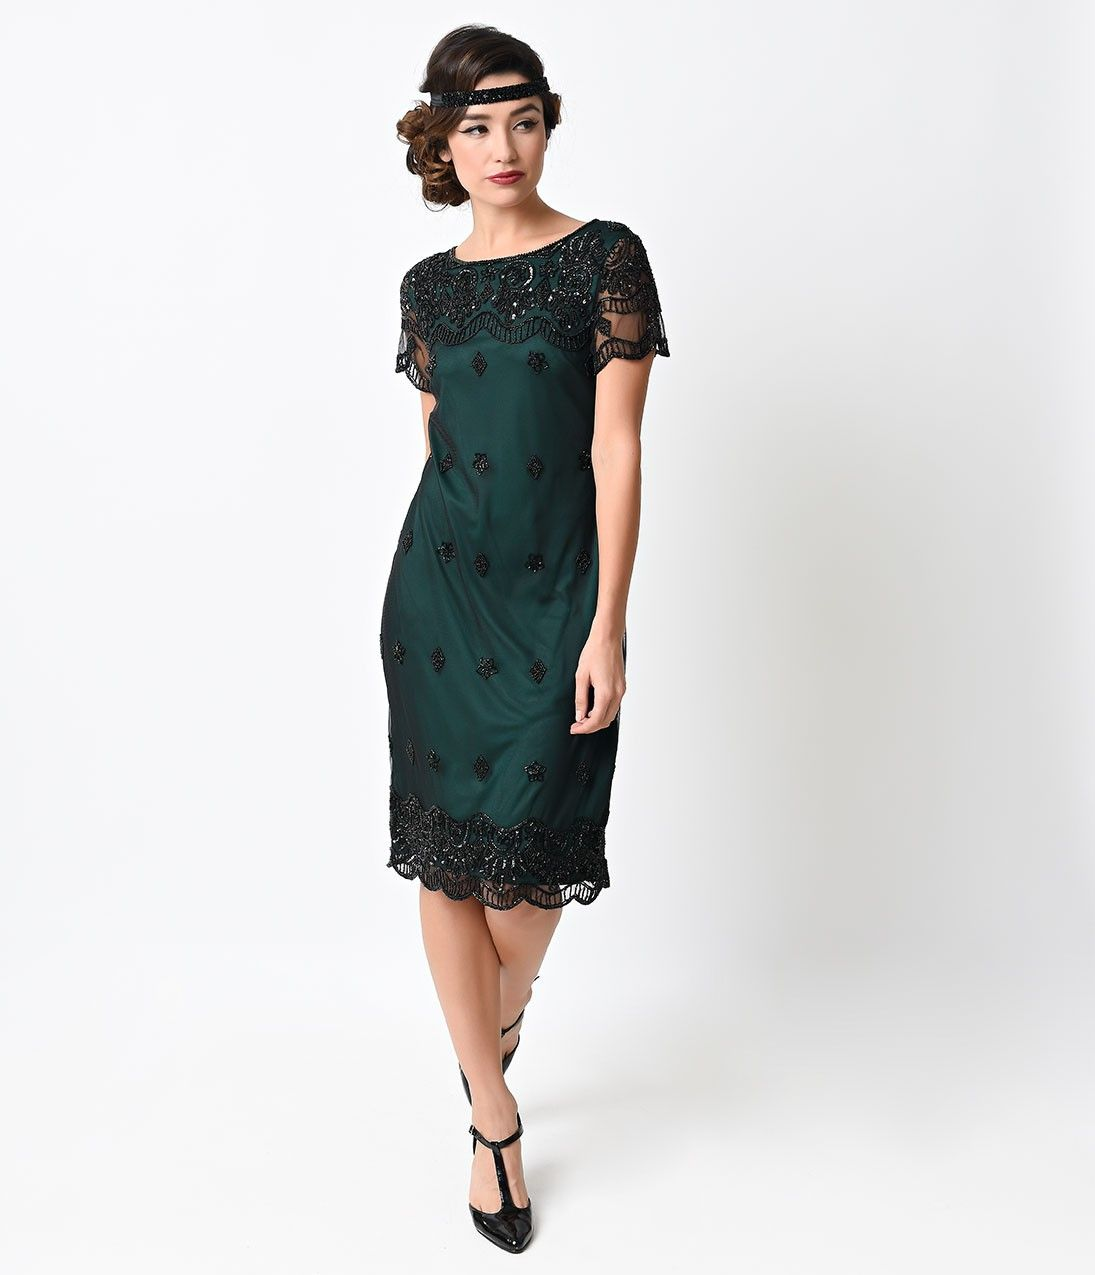 1920s Style Green & Black Flapper Dress | Flapper Follies ...